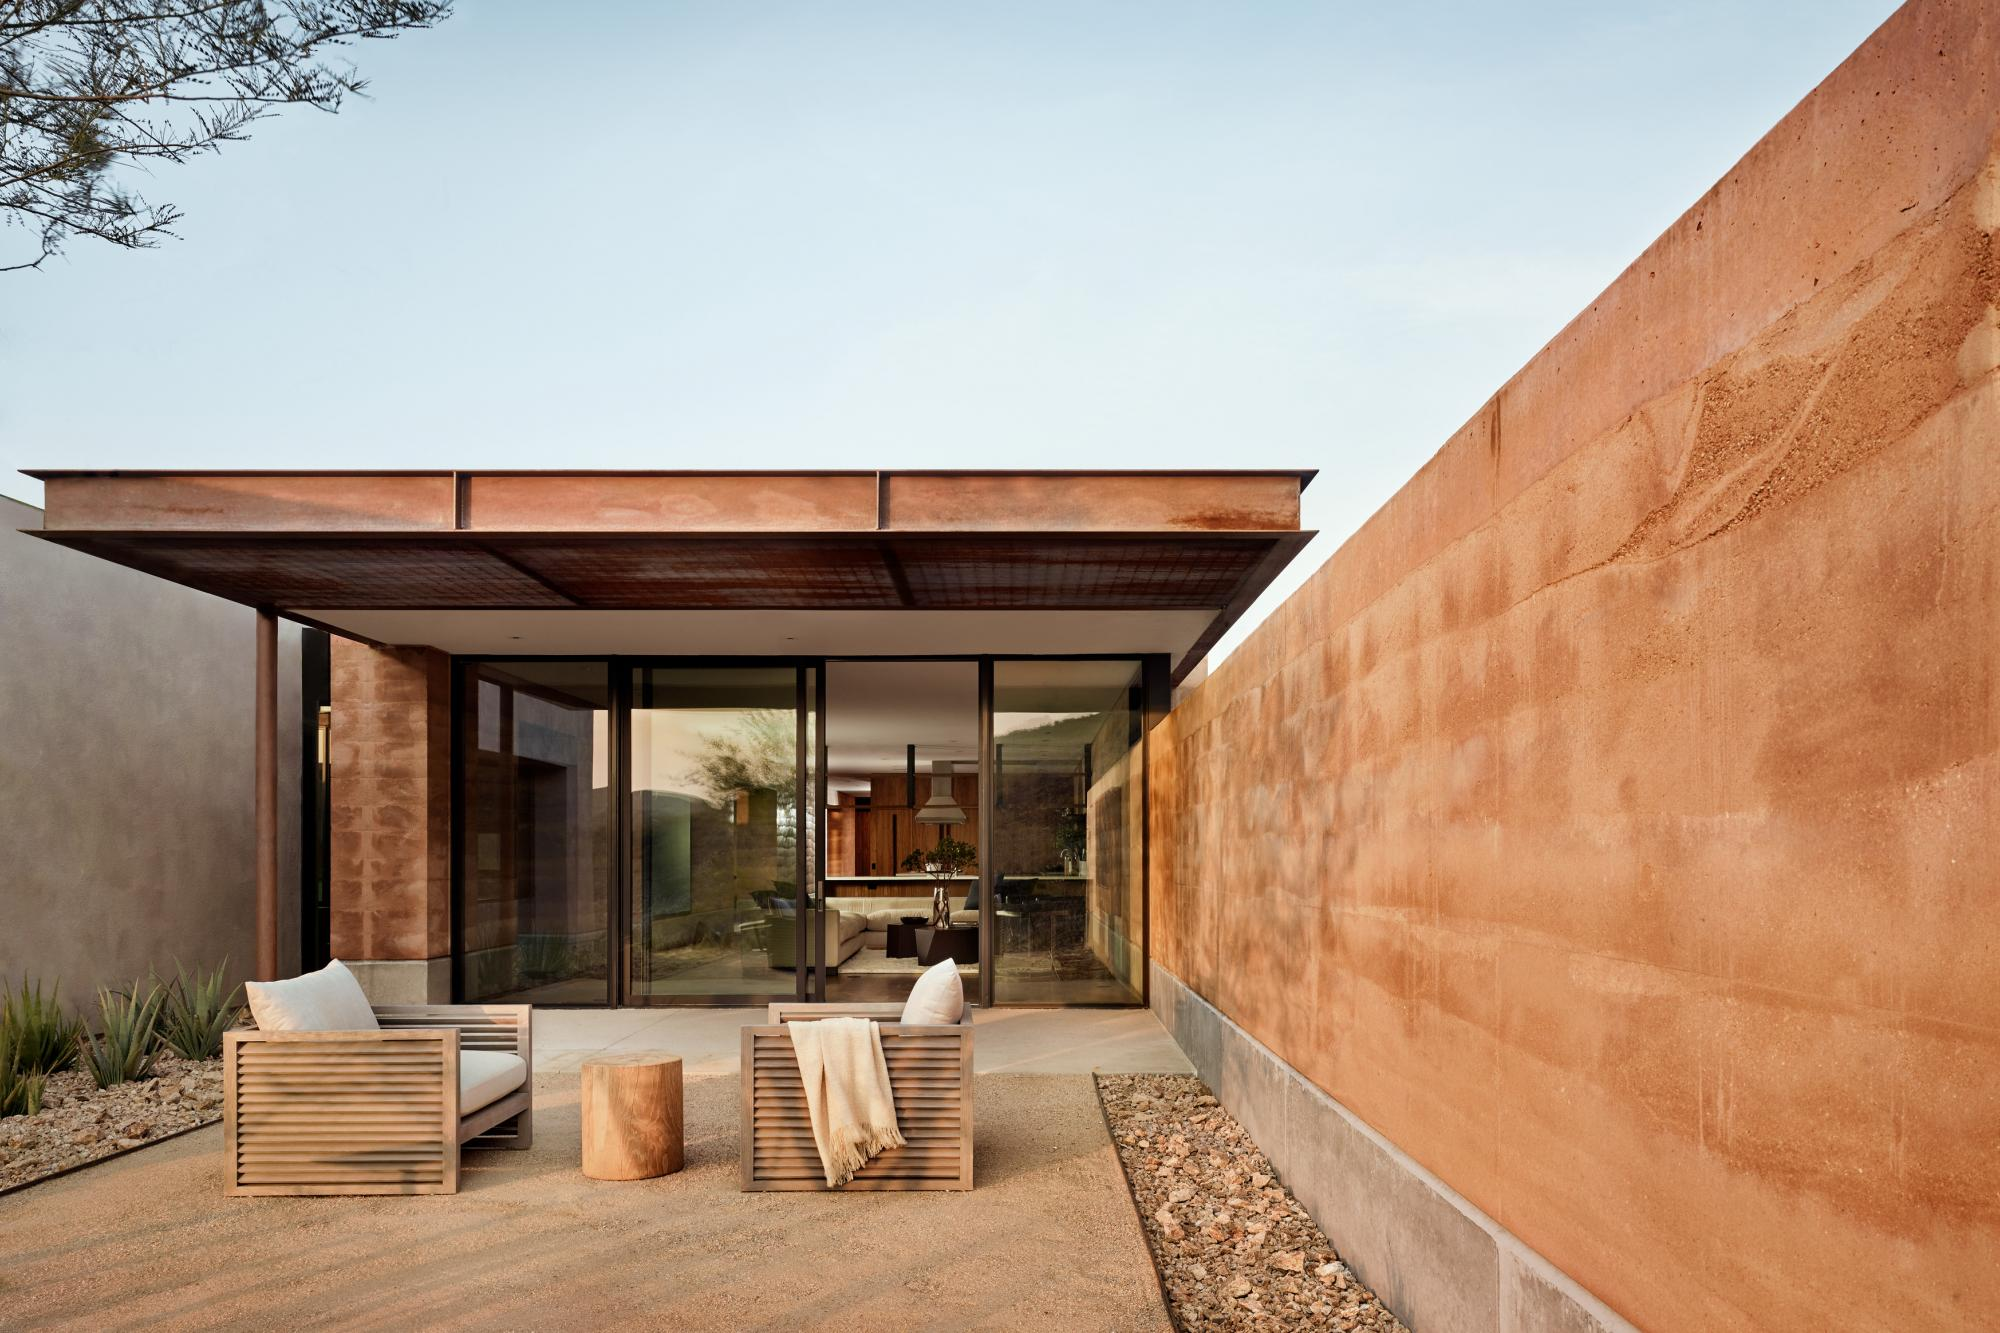 The rammed earth walls create outstretched wings that frame a private landscape while blocking the intense west exposure and northern winter winds.